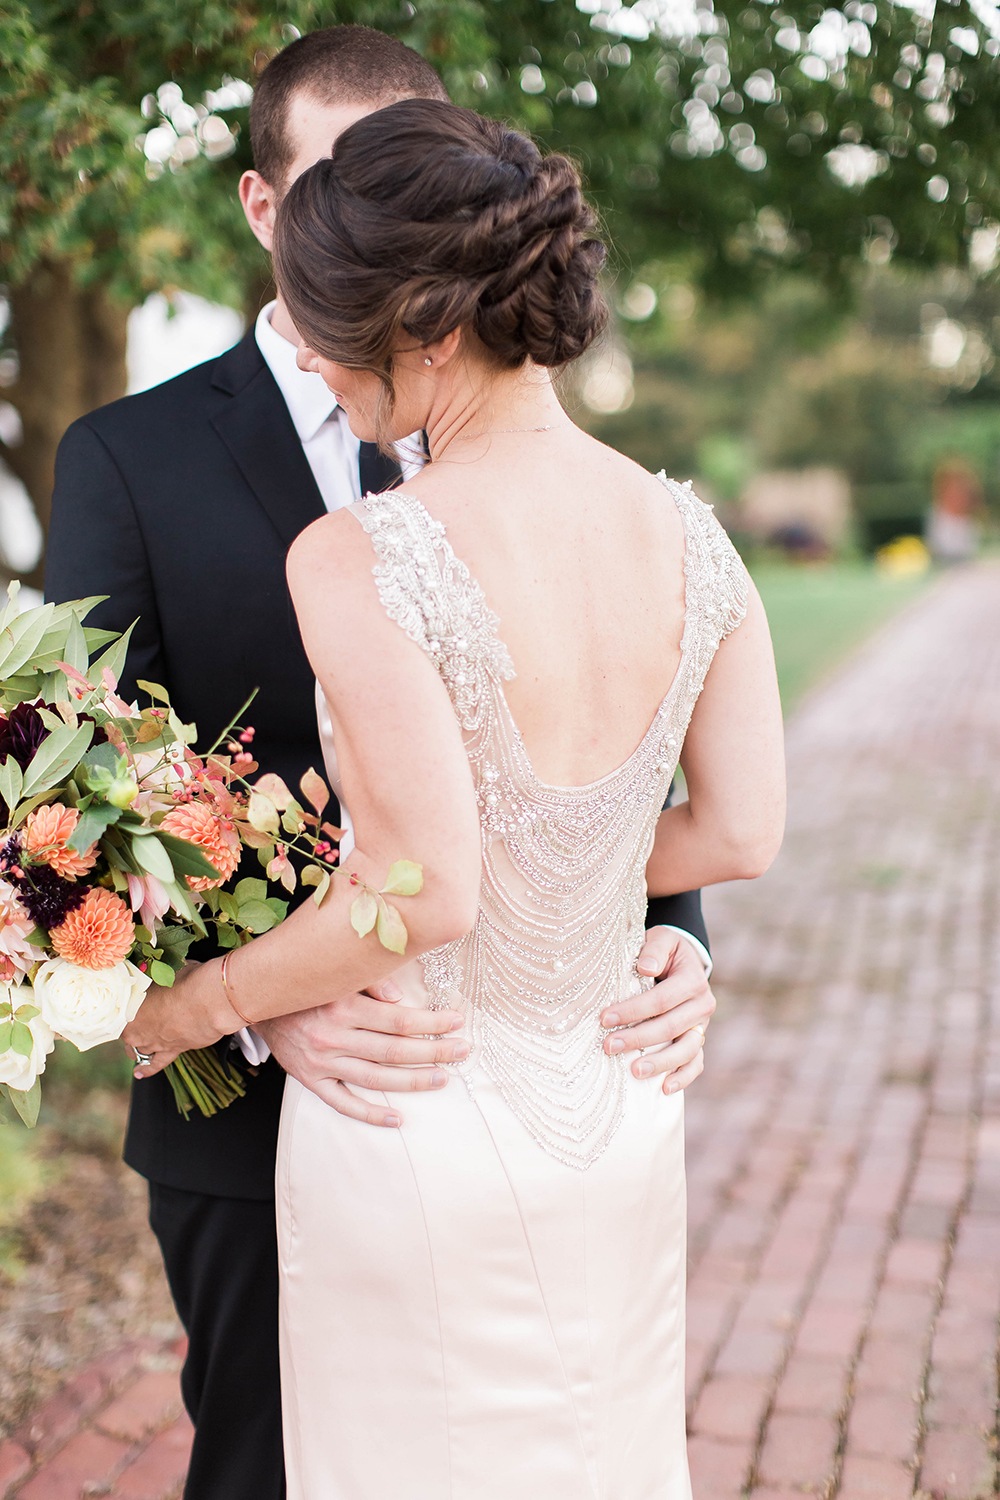 wedding dress detailing - photo by Candice Adelle Photography http://ruffledblog.com/historic-garden-wedding-inspiration